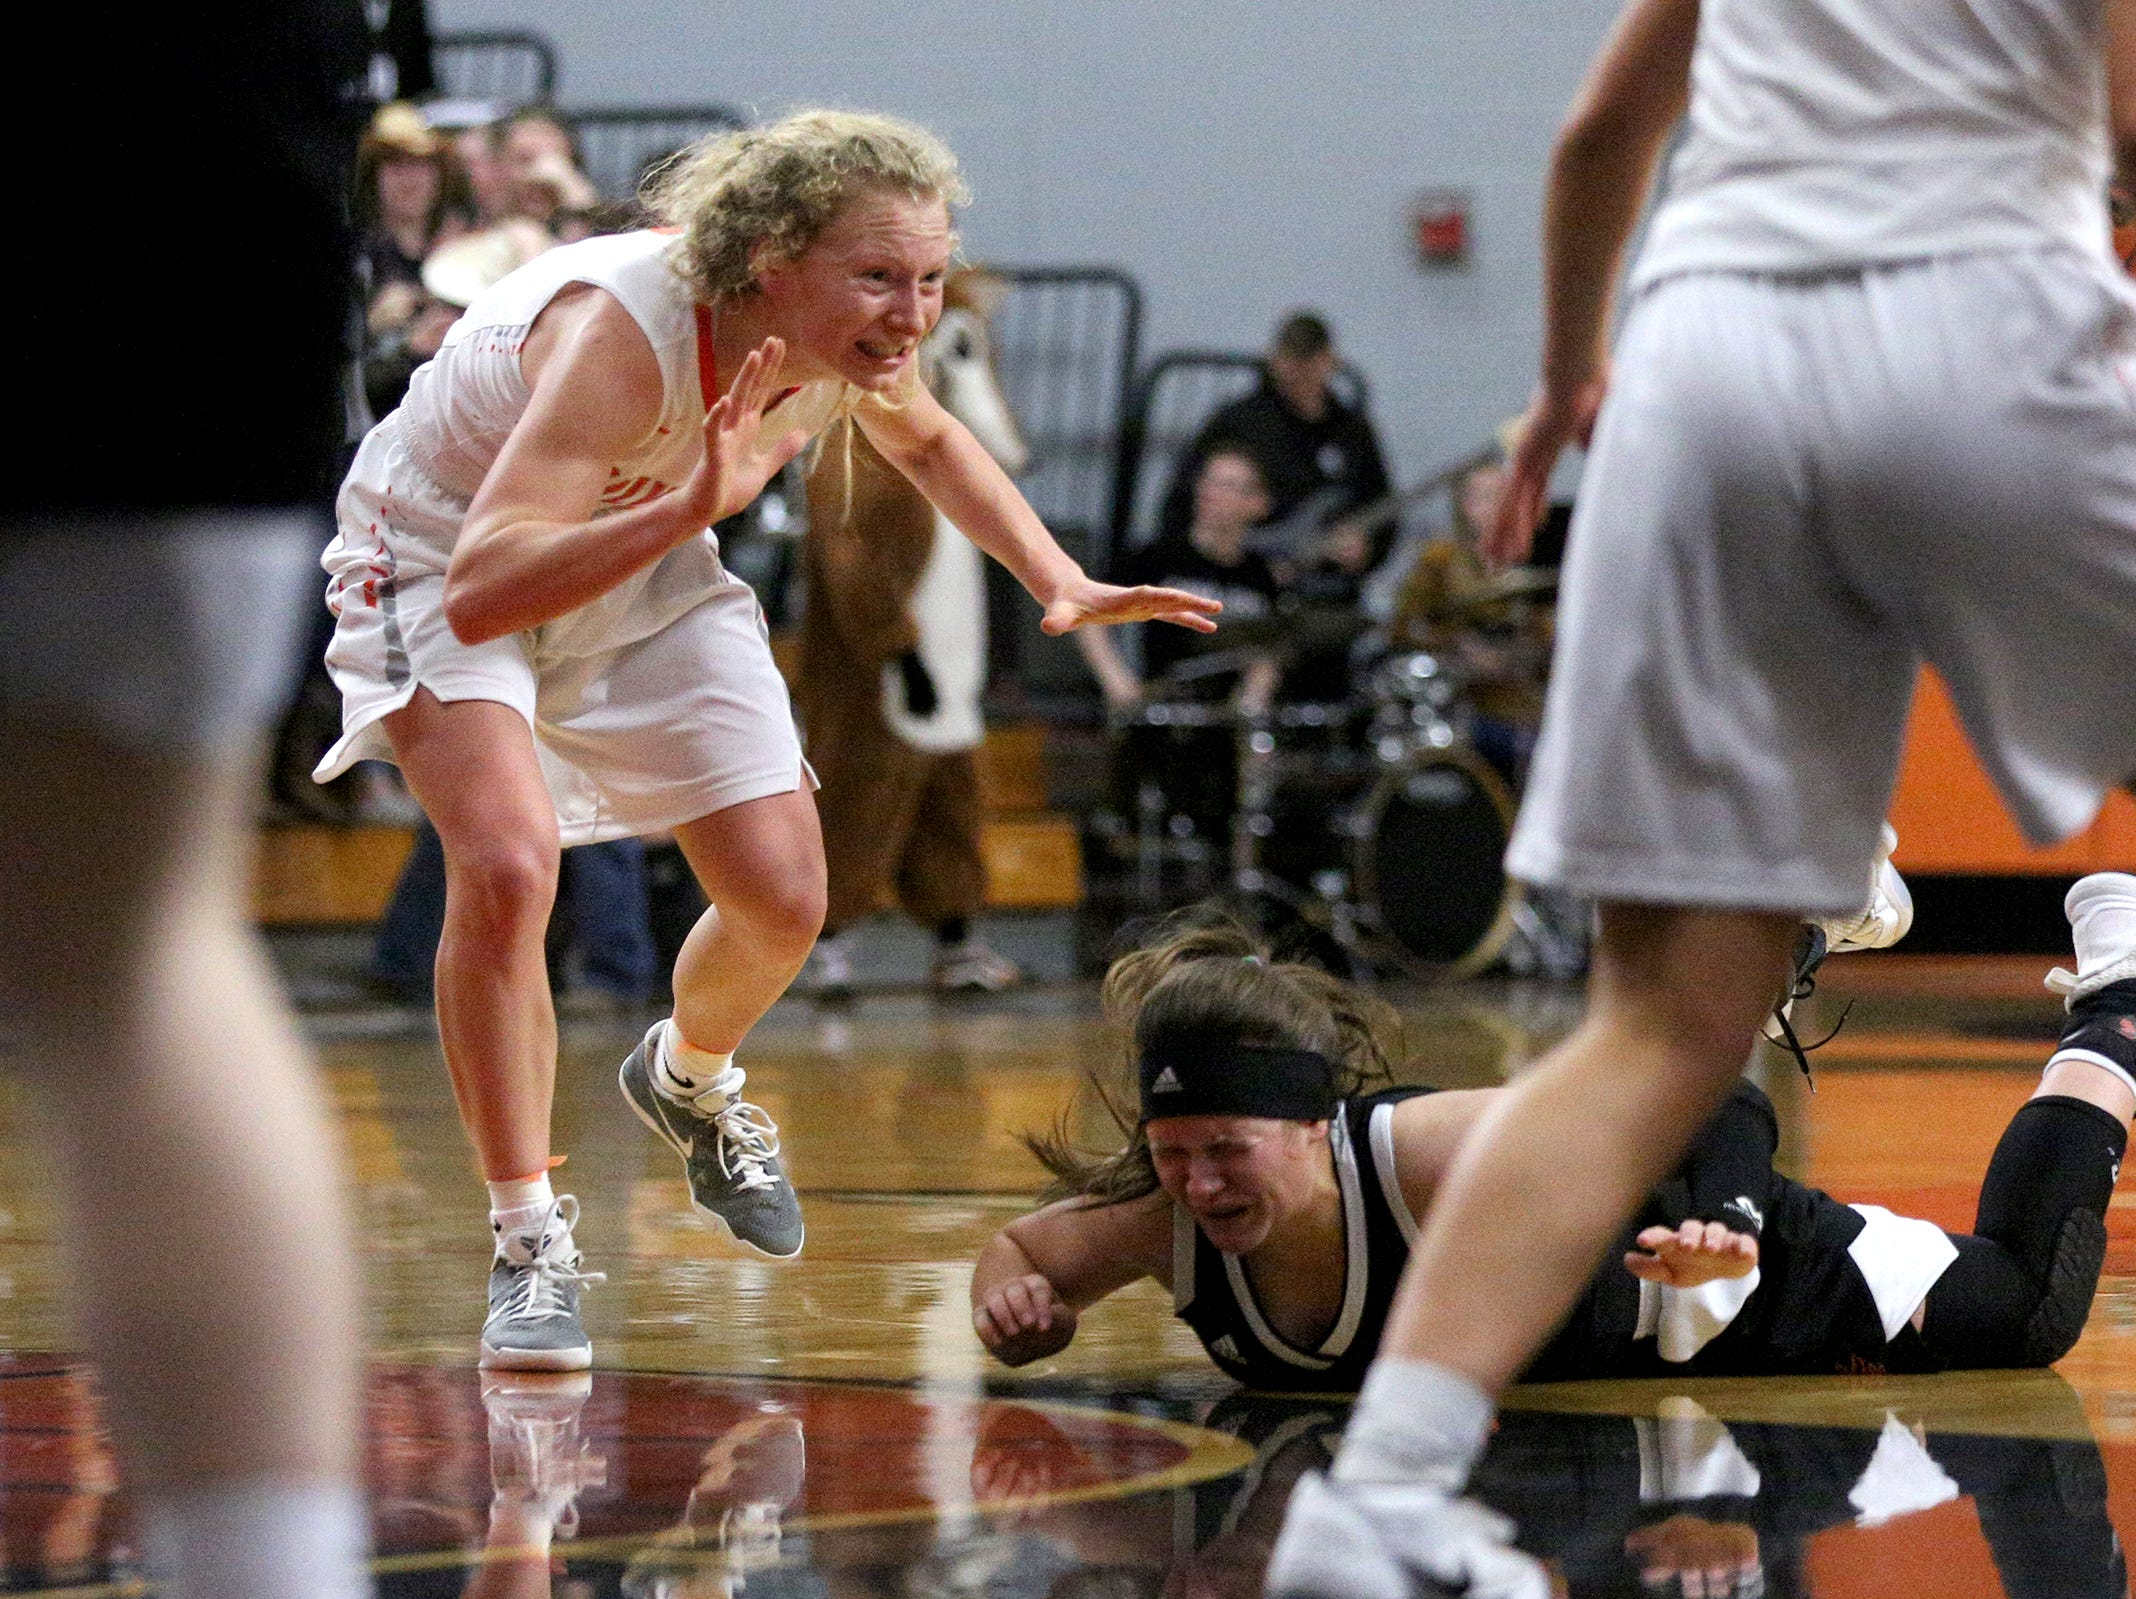 Dallas' Maddie Doig (4) falls after losing the ball during the Dallas High School vs. Silverton High School girls basketball game in Silverton on Tuesday, Dec. 8, 2019.